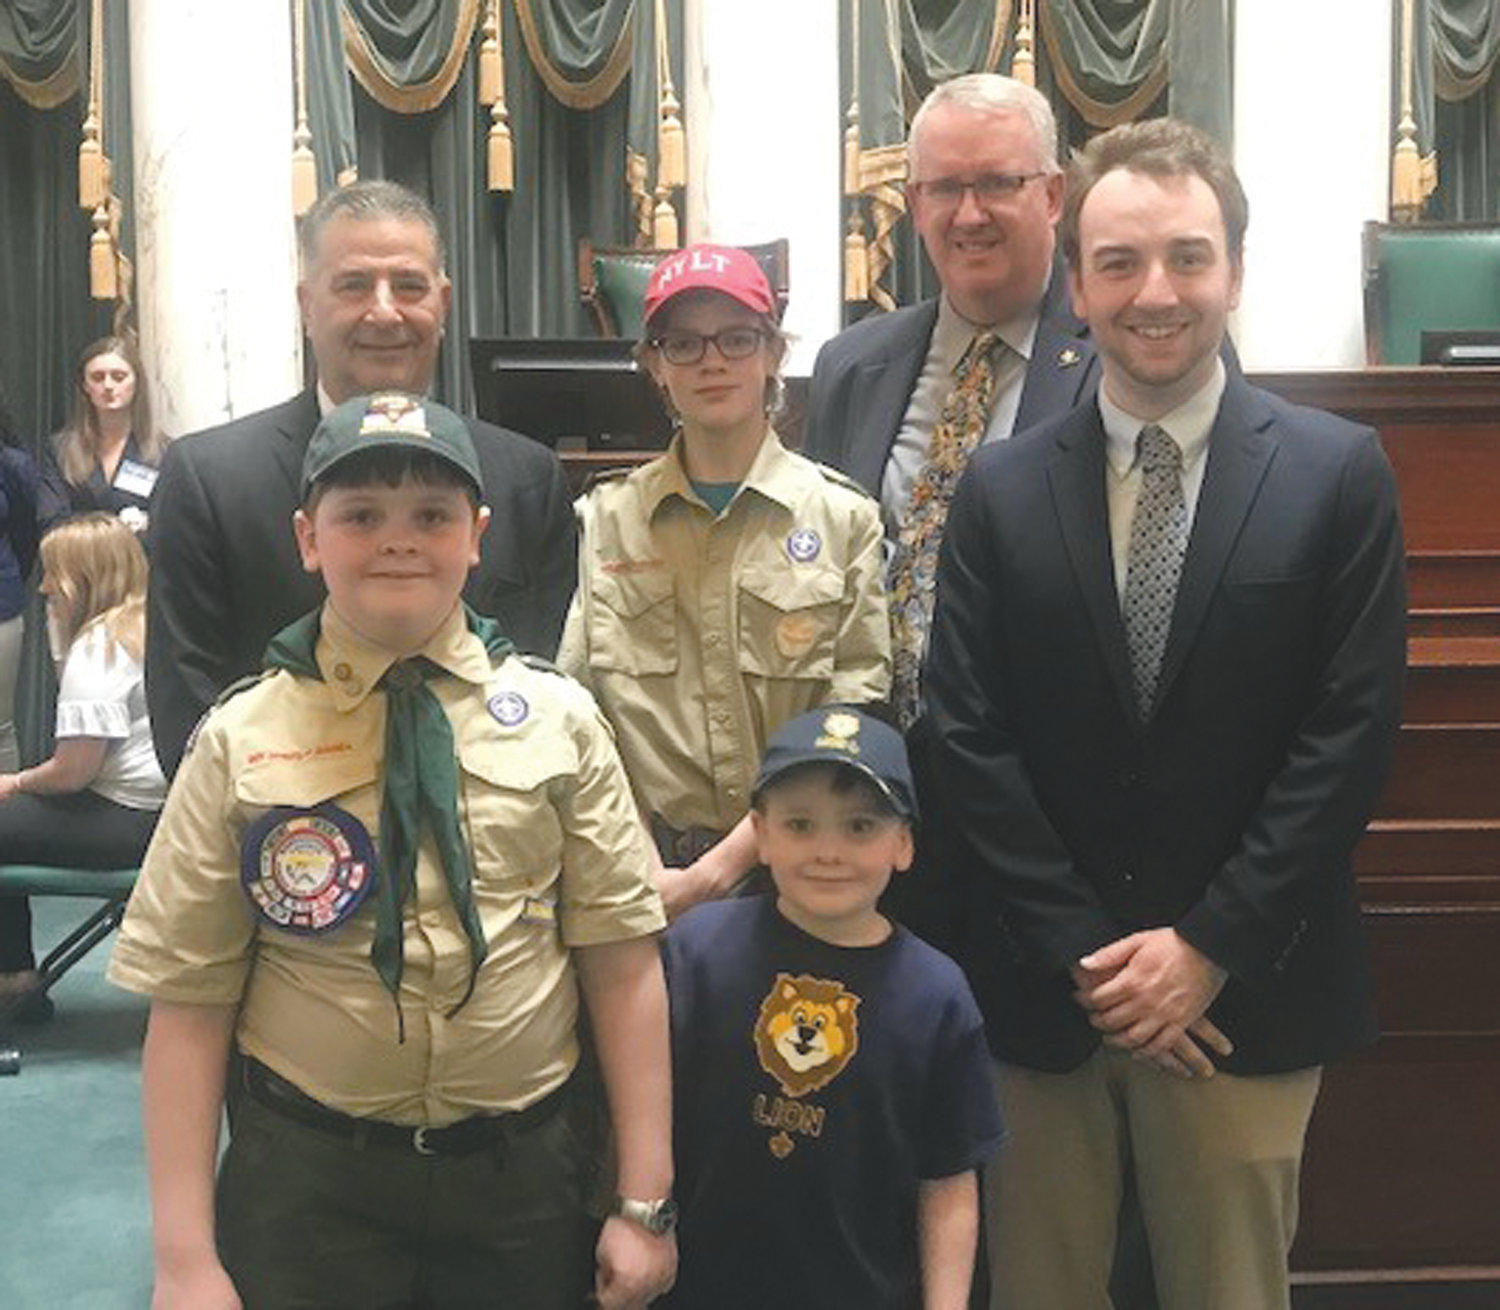 SCOUTS HONORED: Pictured during the Report to State gathering at the State House are, back row from left, Sen. Frank Lombardo, Connor Malone and Scout Executive and CEO Tim McCandless; and front row from left, Jude Ladino, Jesse Ladino and Matt Goudreau, Northwest district executive.